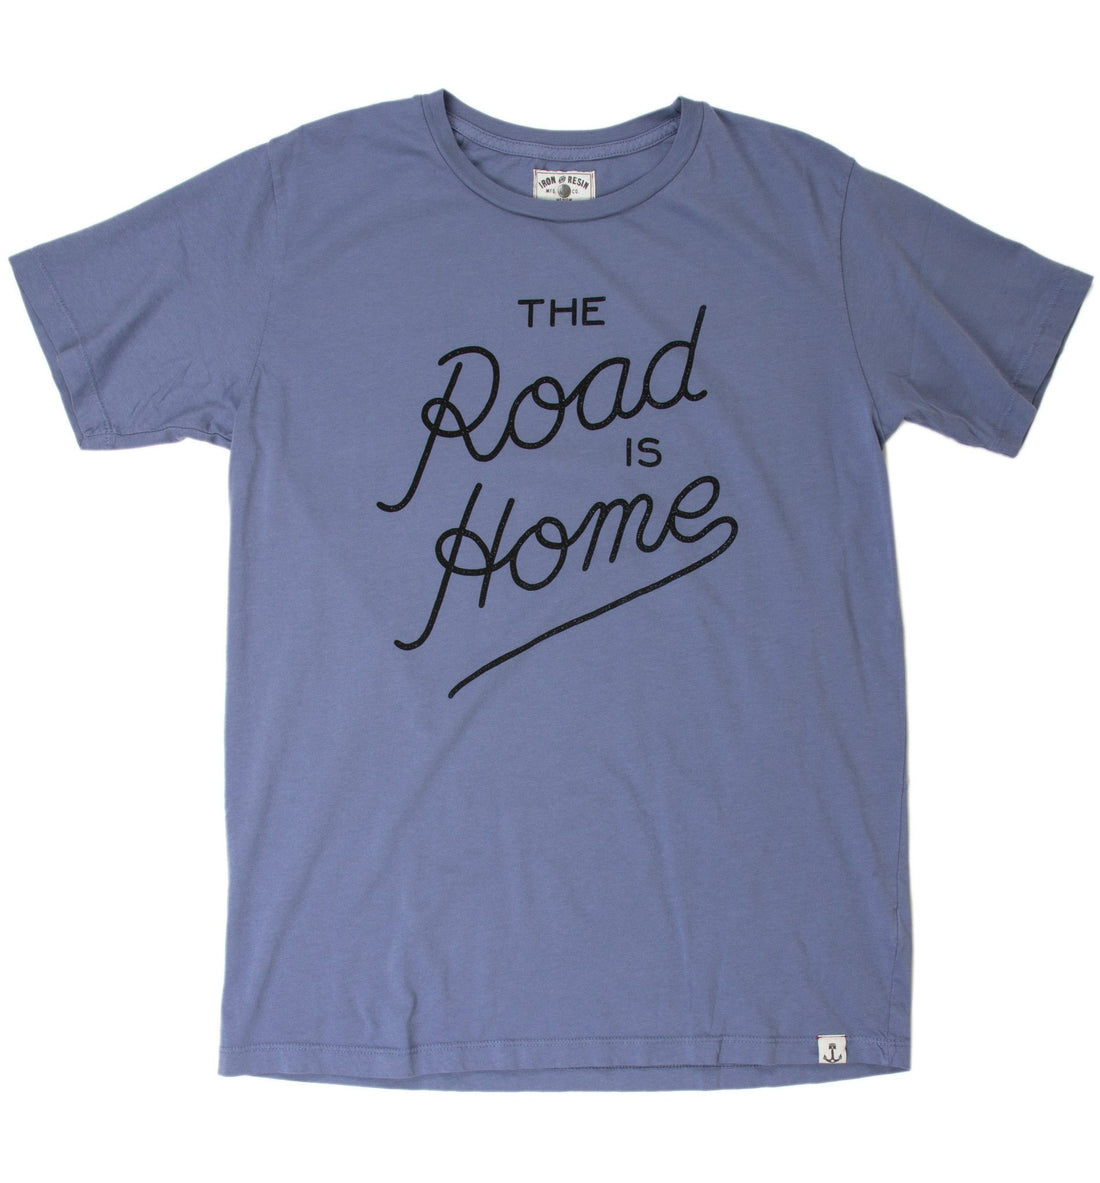 INR Home Tee - Apparel: Men's: Graphic T-Shirts - Iron and Resin